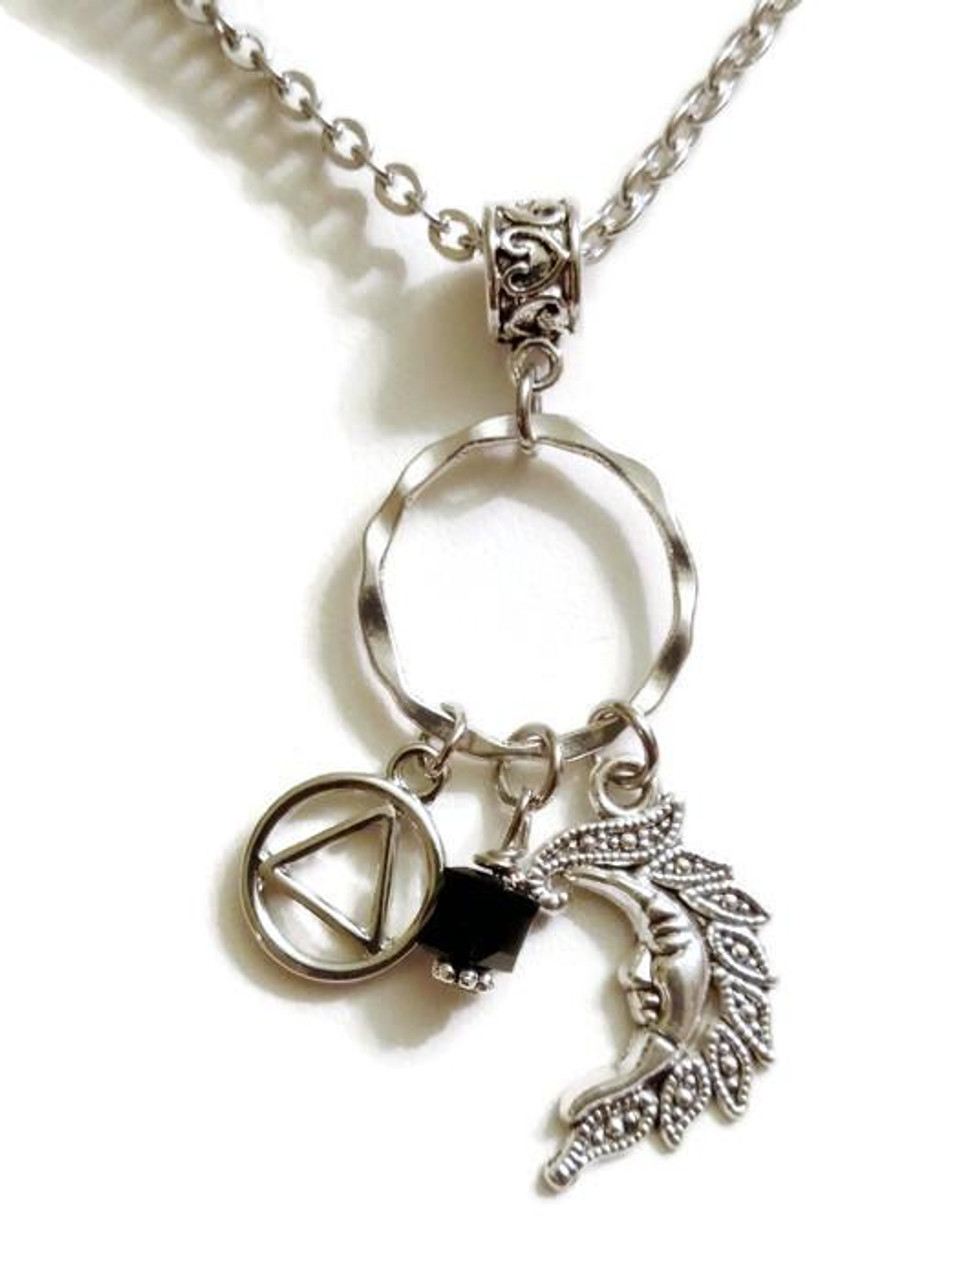 Moon charm holder necklace alcoholics anonymous doing it sober moon charm holder necklace alcoholics anonymous aloadofball Images